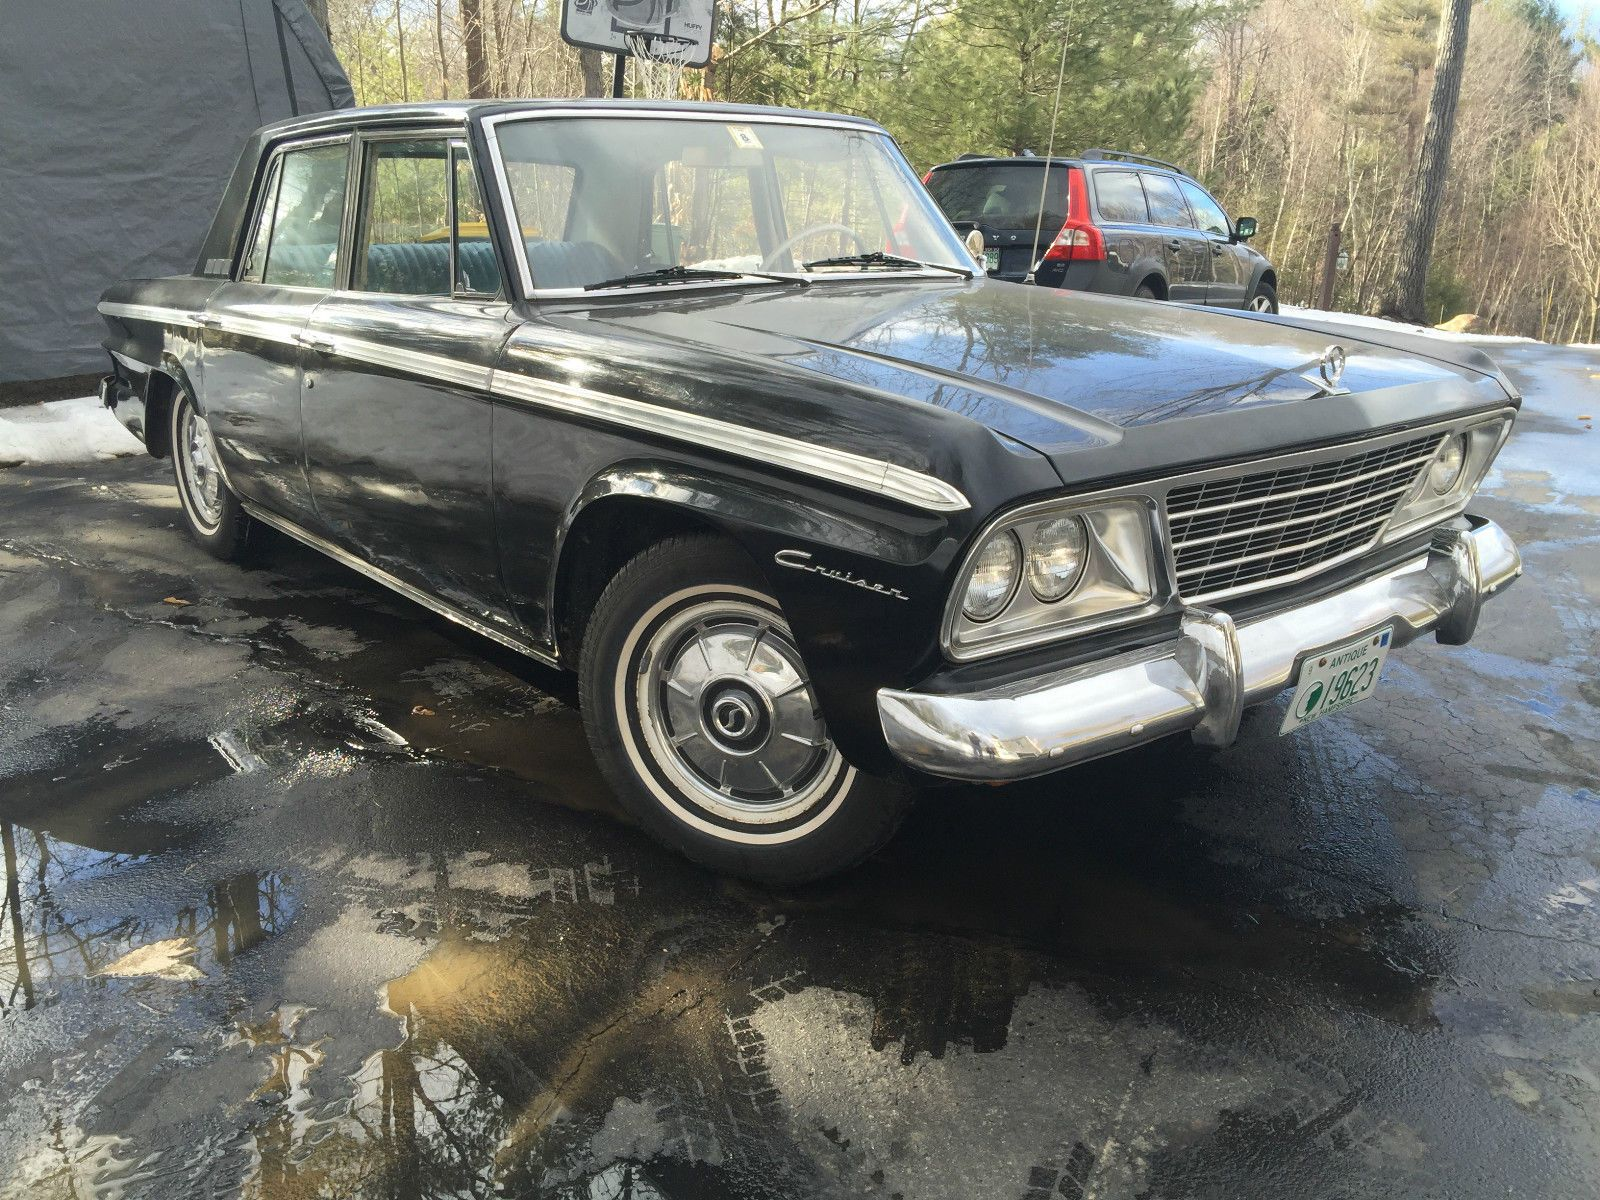 1964 Studebaker Cruiser Project Car | Project cars for sale ...